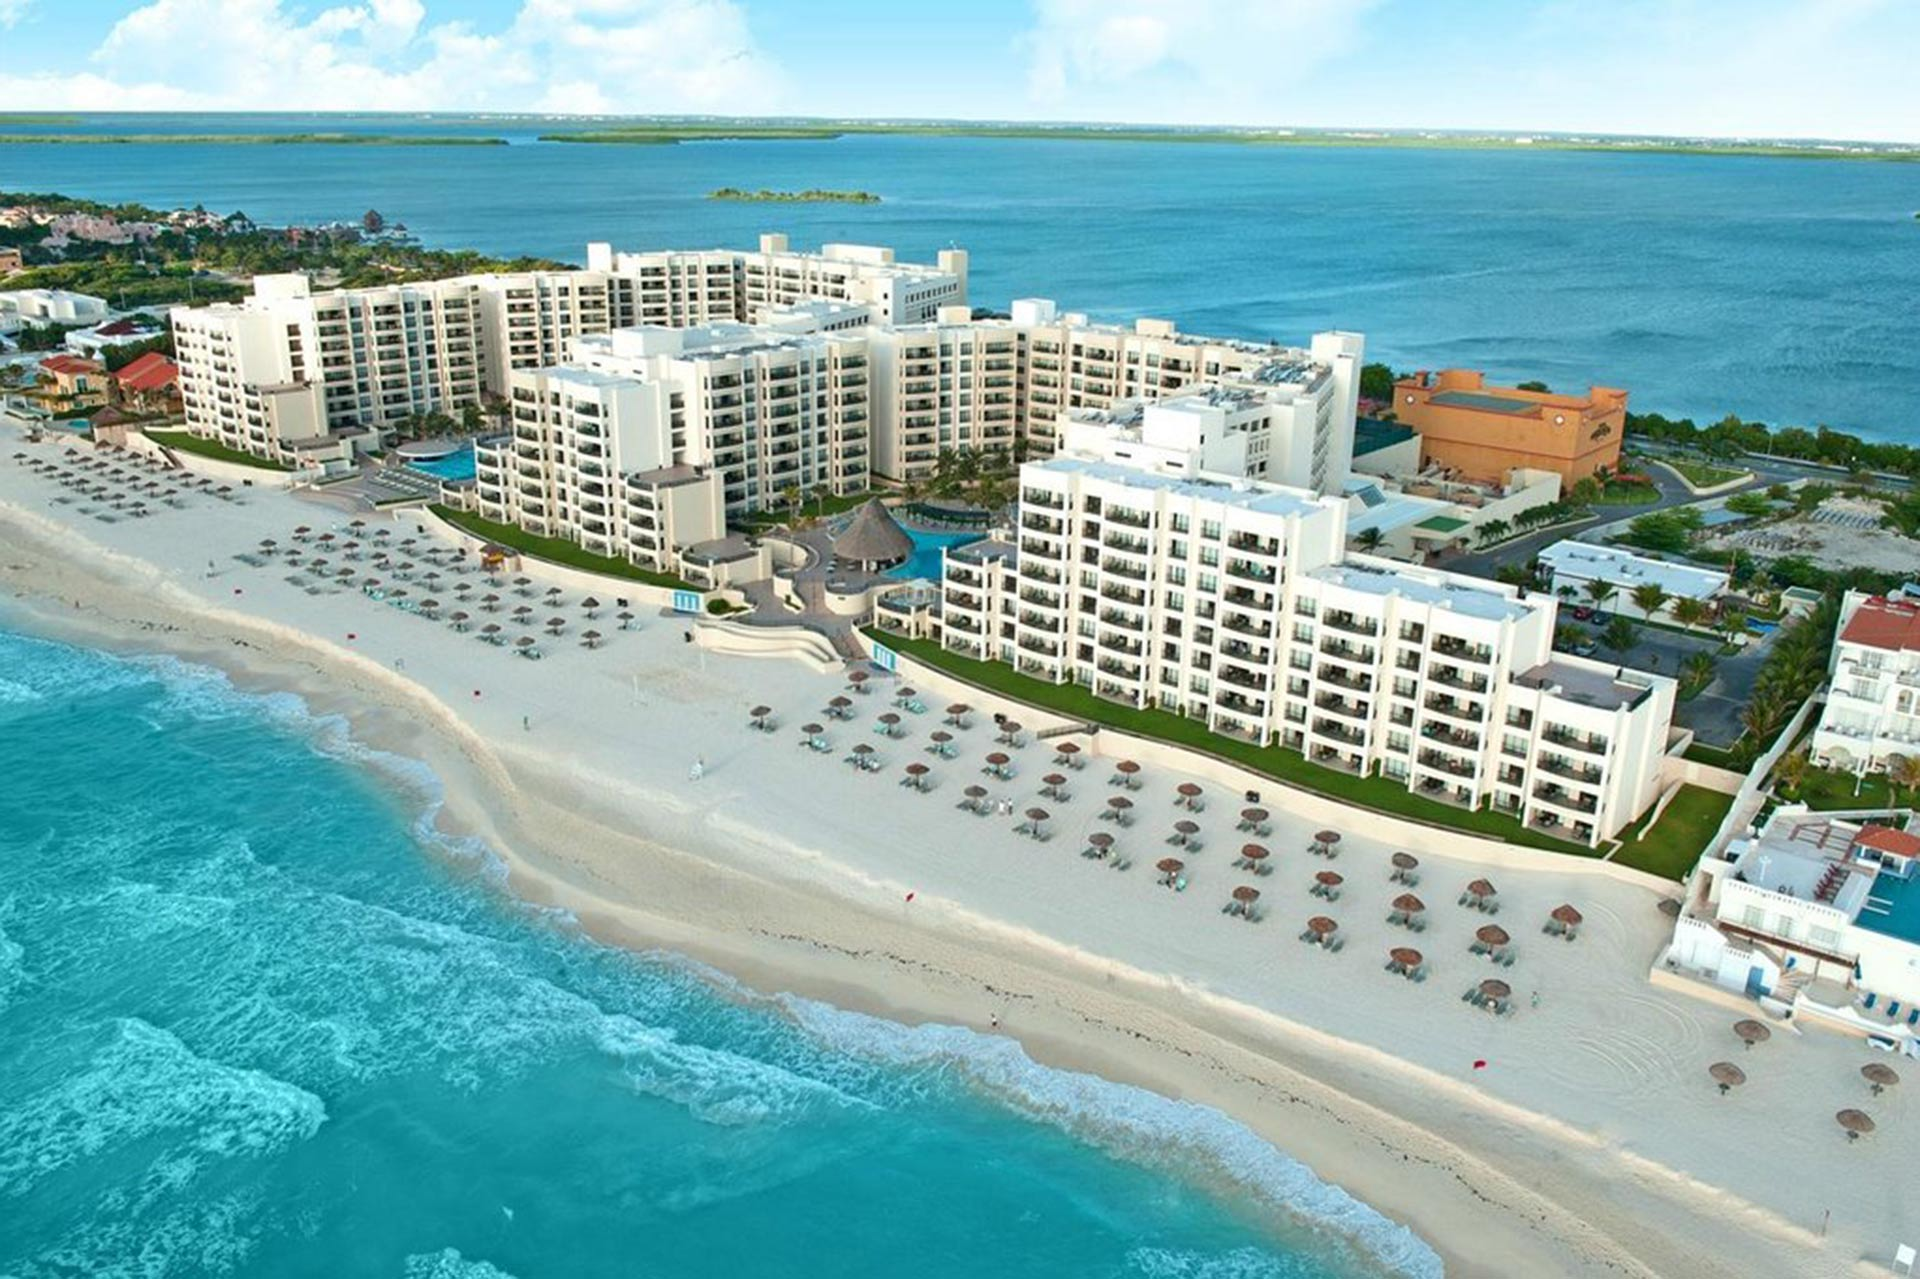 The Royal Sands in Cancun.